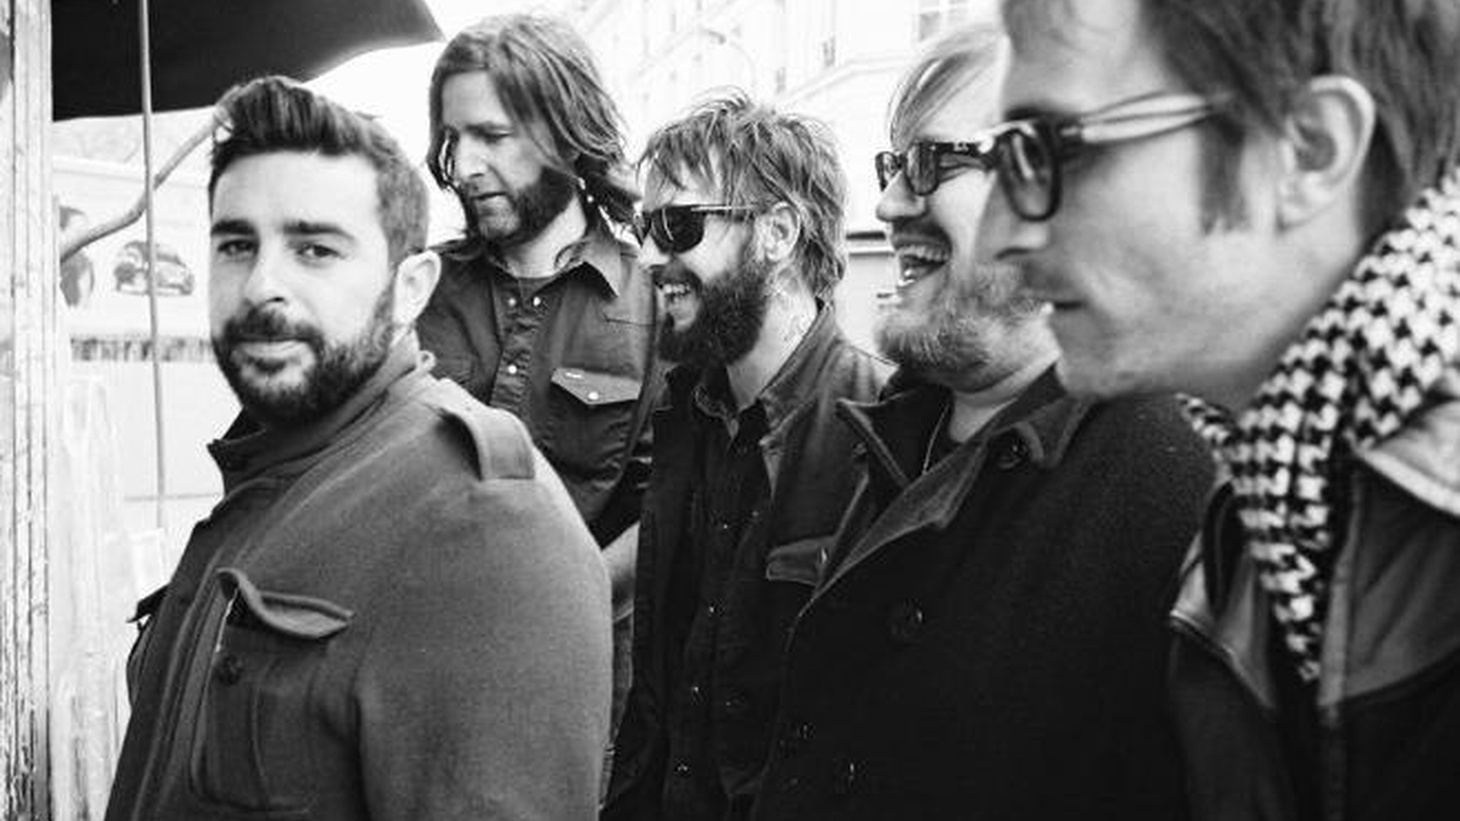 """Band of Horses have always been a station favorite but they took their sound to the next level on their latest release """"Infinite Arms"""" as they travel through Americana and dewy pop songs. Morning Becomes Eclectic listeners will be treated to a live performance when the band returns at 11:15am."""